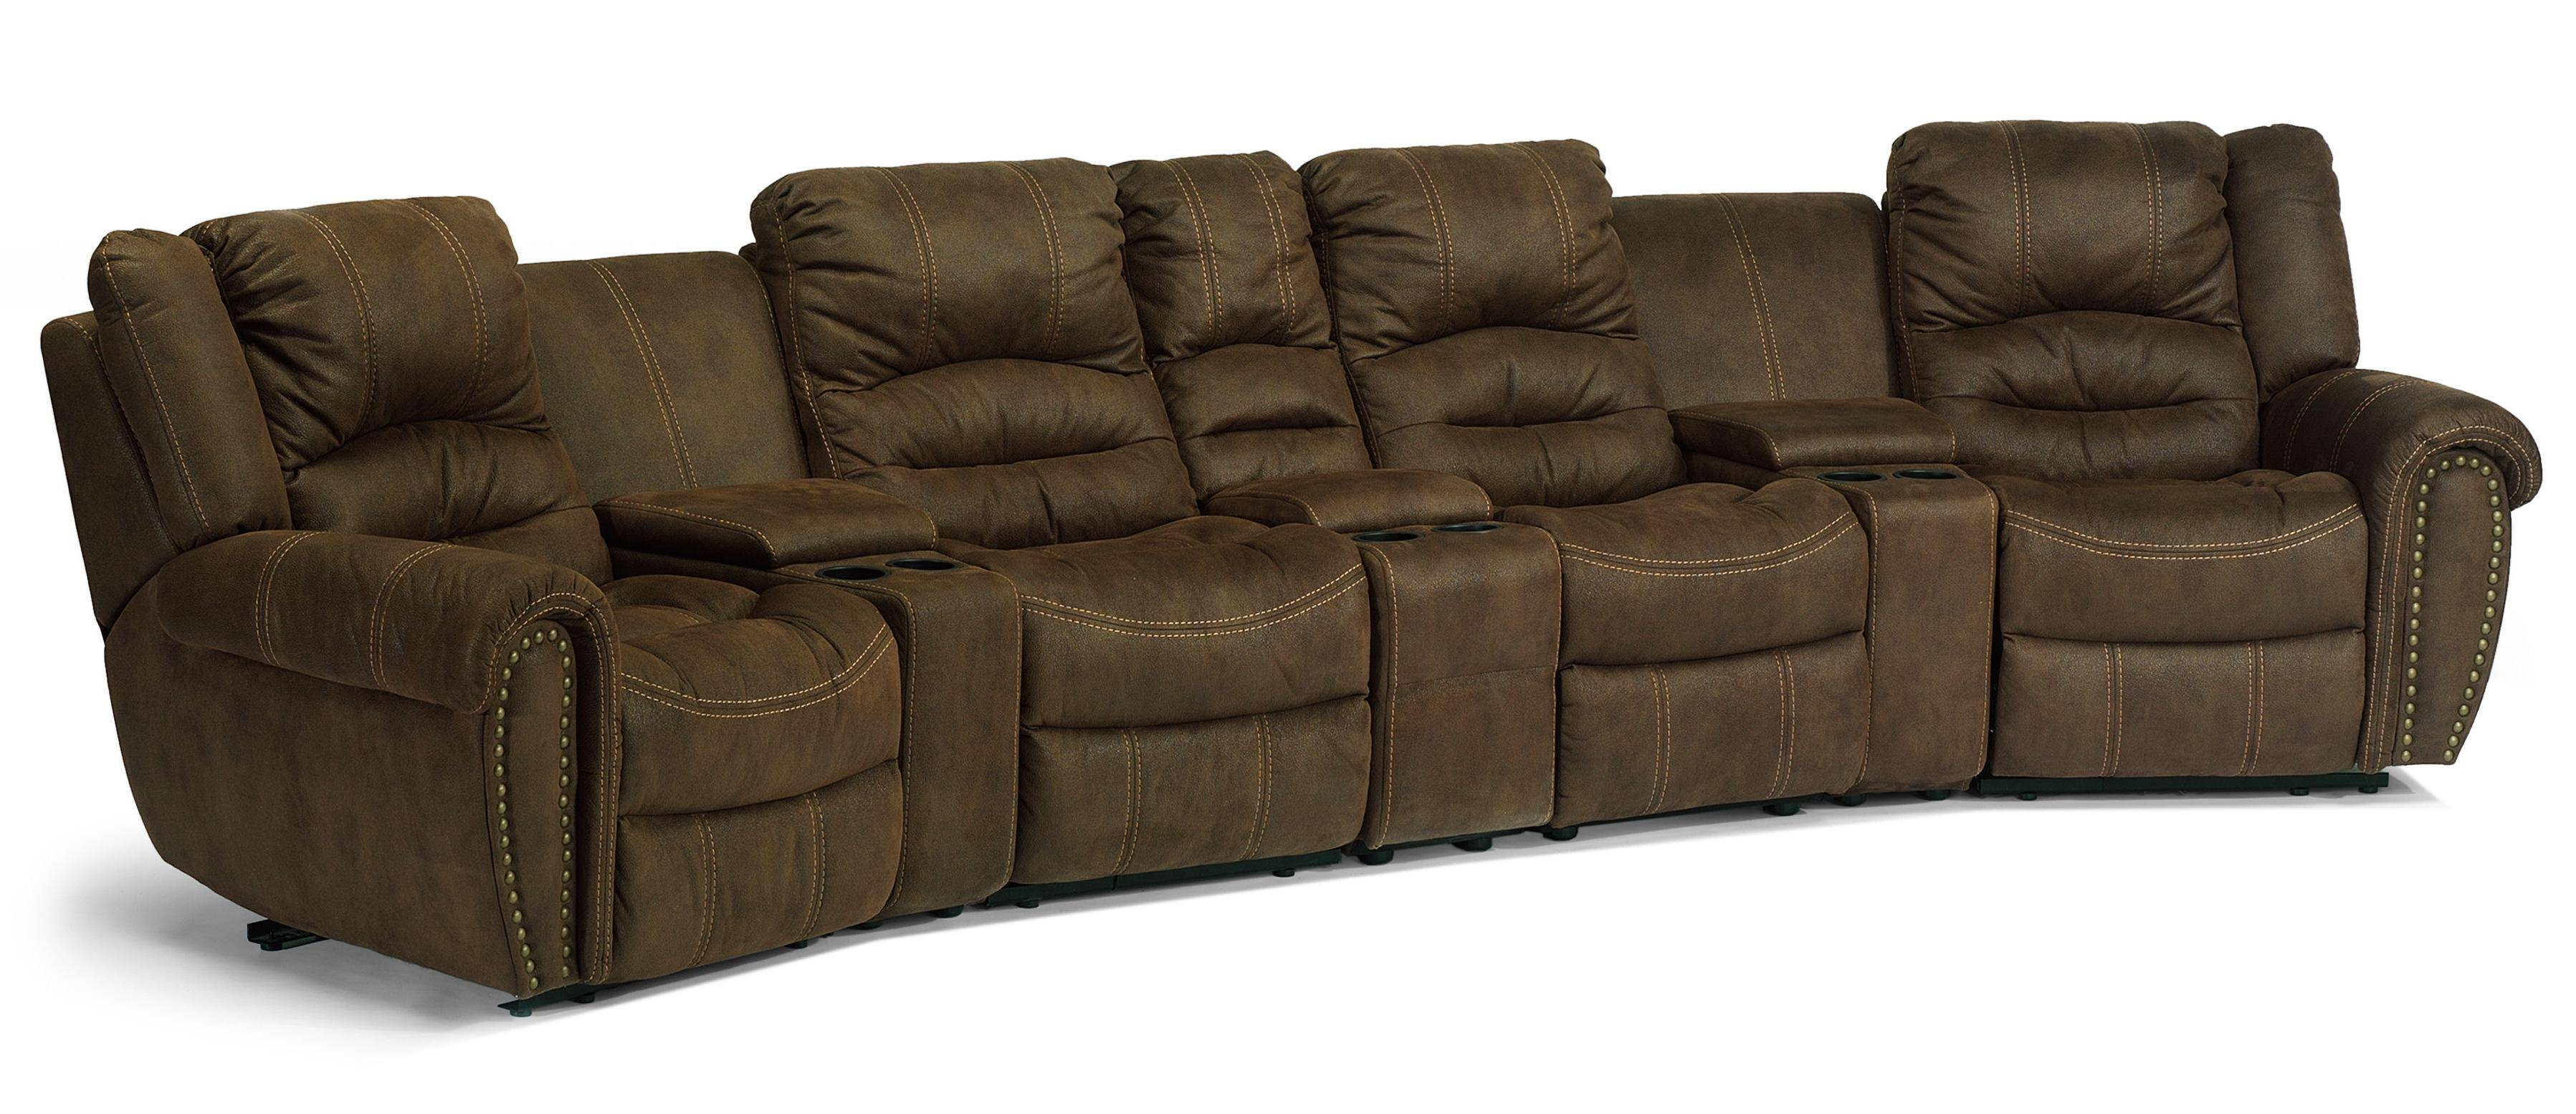 Flexsteel Latitudes - New Town Curved Reclining Sectional Sofa in Curved Recliner Sofa (Image 8 of 30)